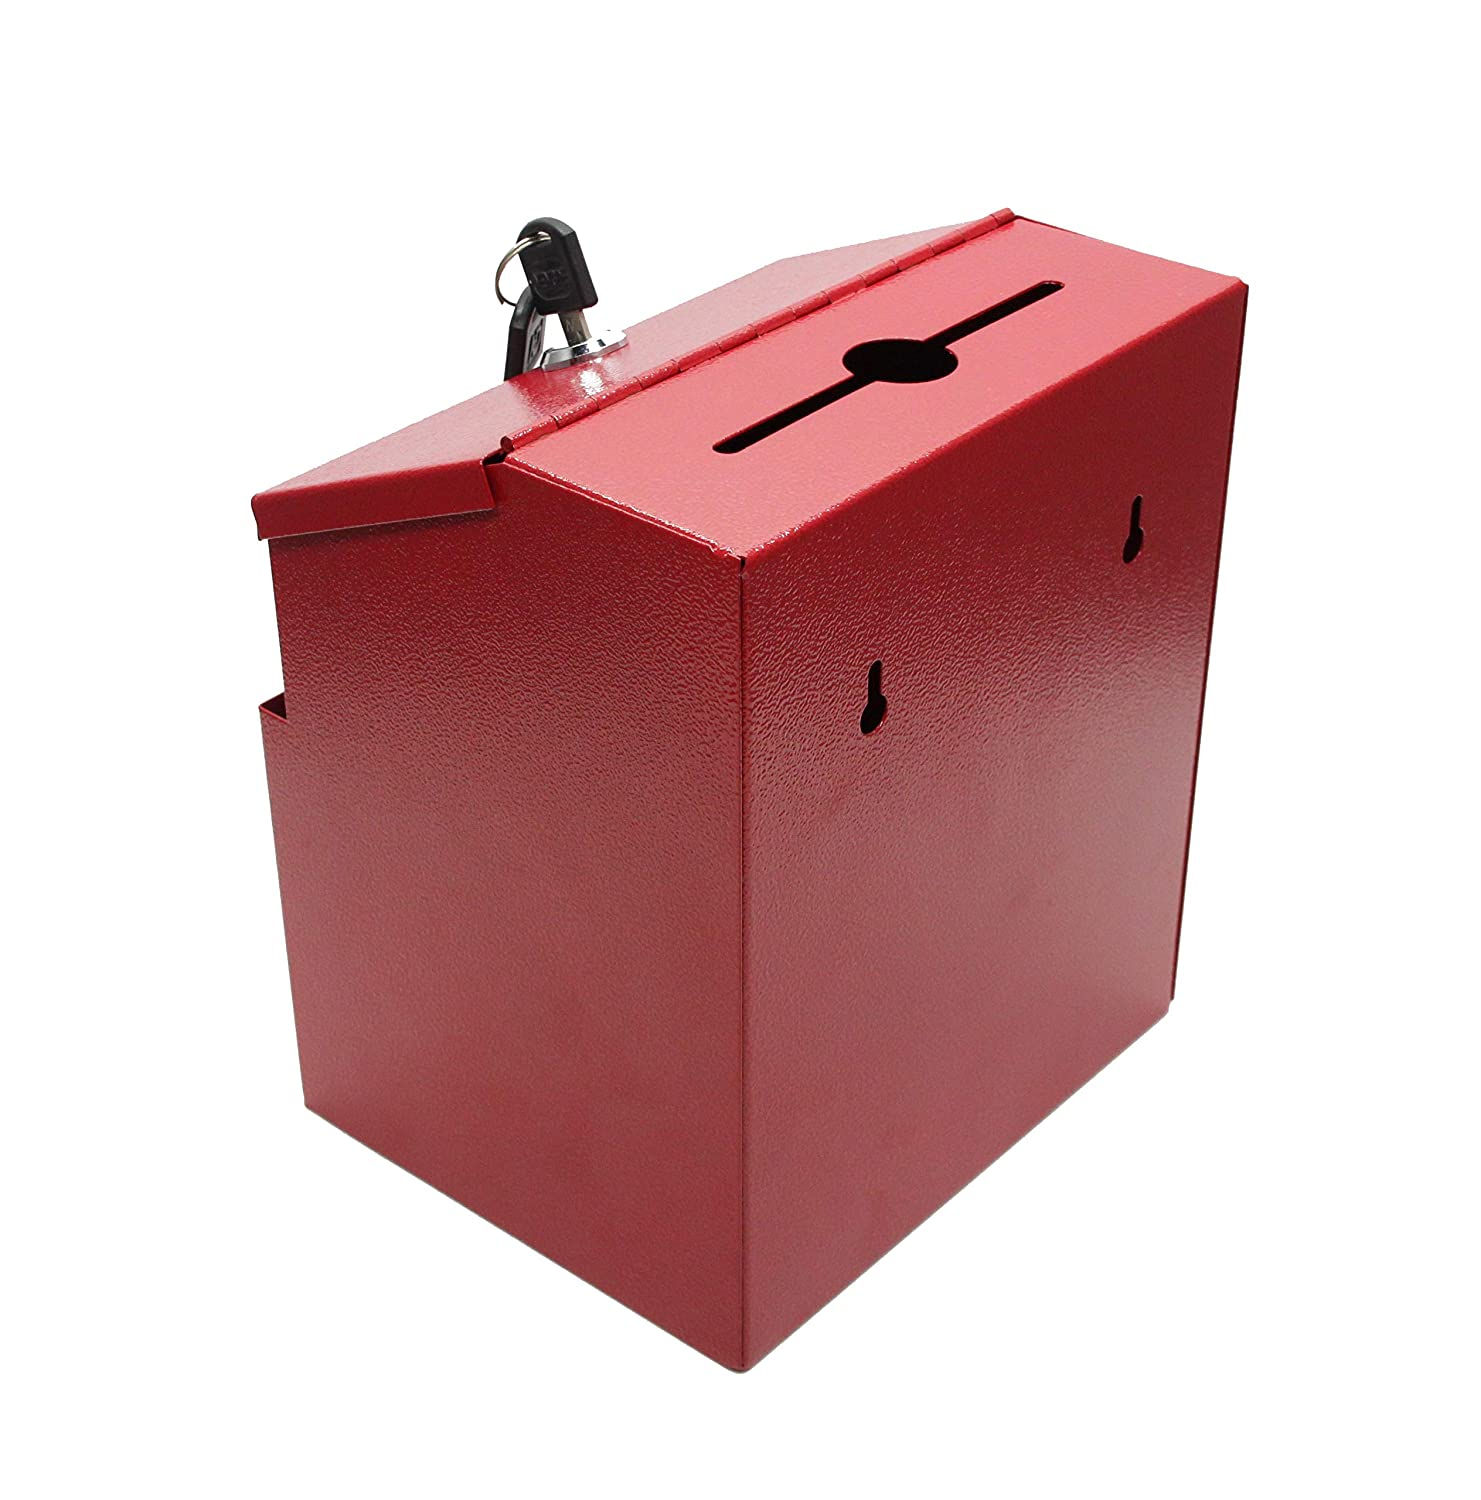 FixtureDisplays Red Suggestion Metal Donation Key Drop Box Express Checkout Comments sales lead box 11118-RED-FBA